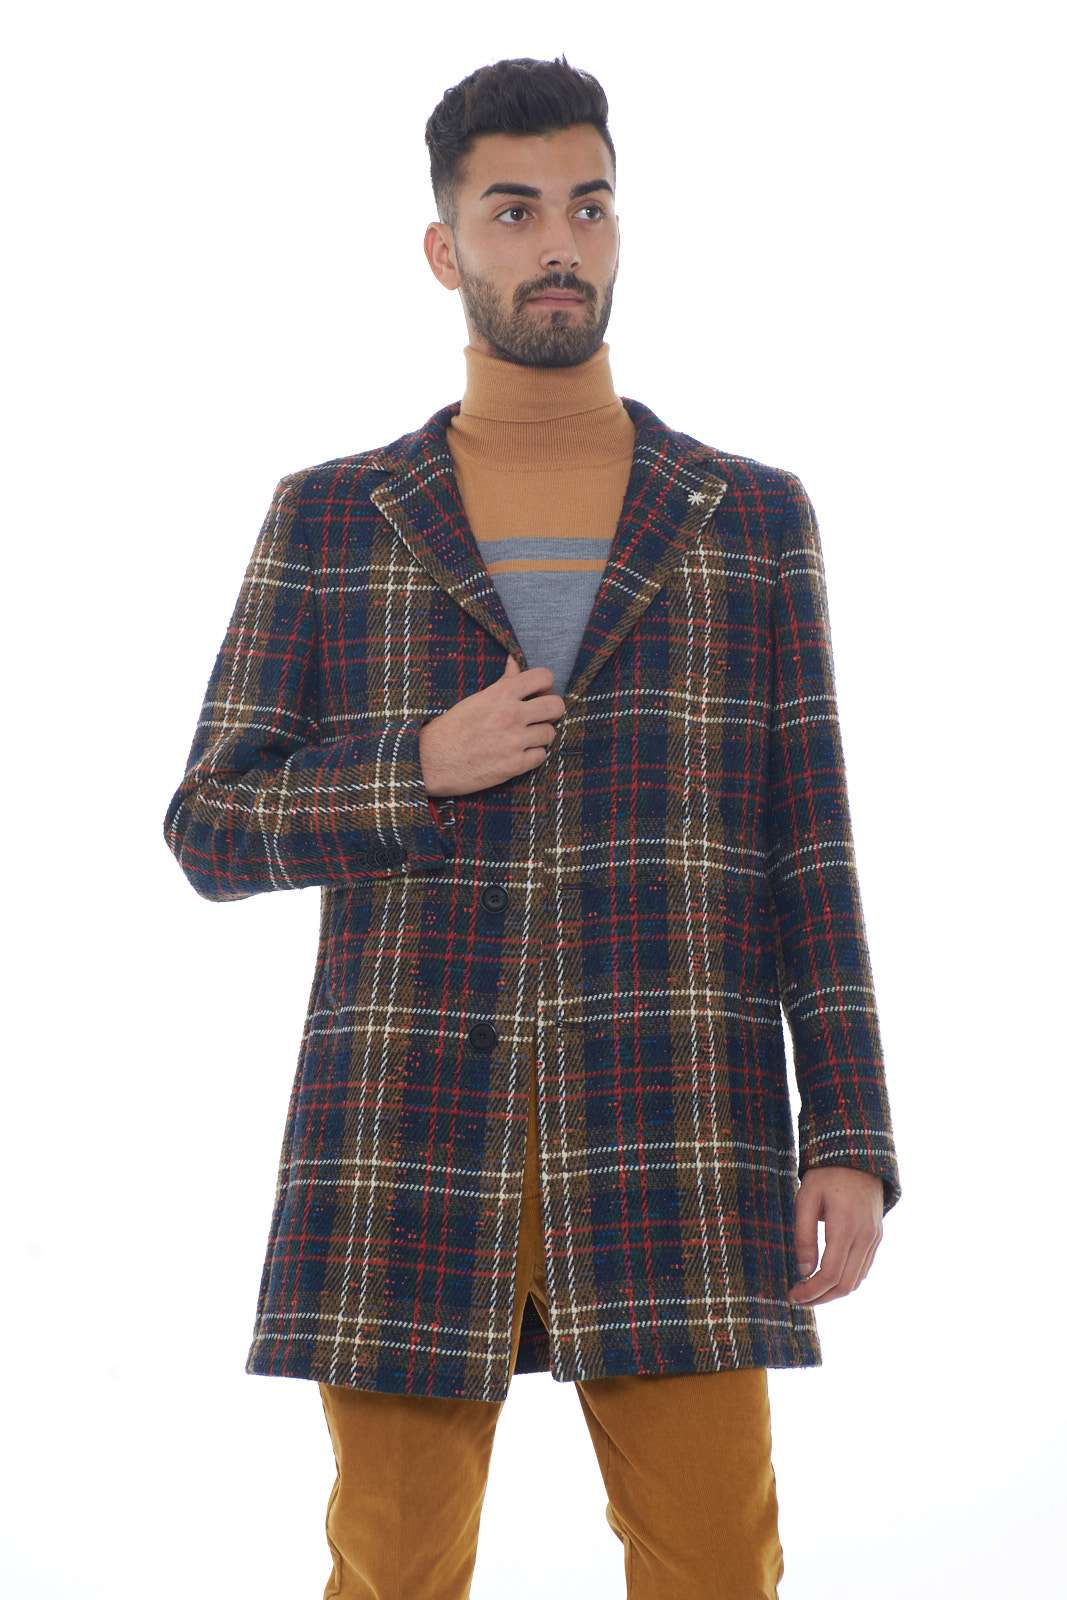 https://www.parmax.com/media/catalog/product/a/i/AI-outlet_parmax-cappotto-uomo-Manuel-Ritz-2732C4478%20193730-A.jpg